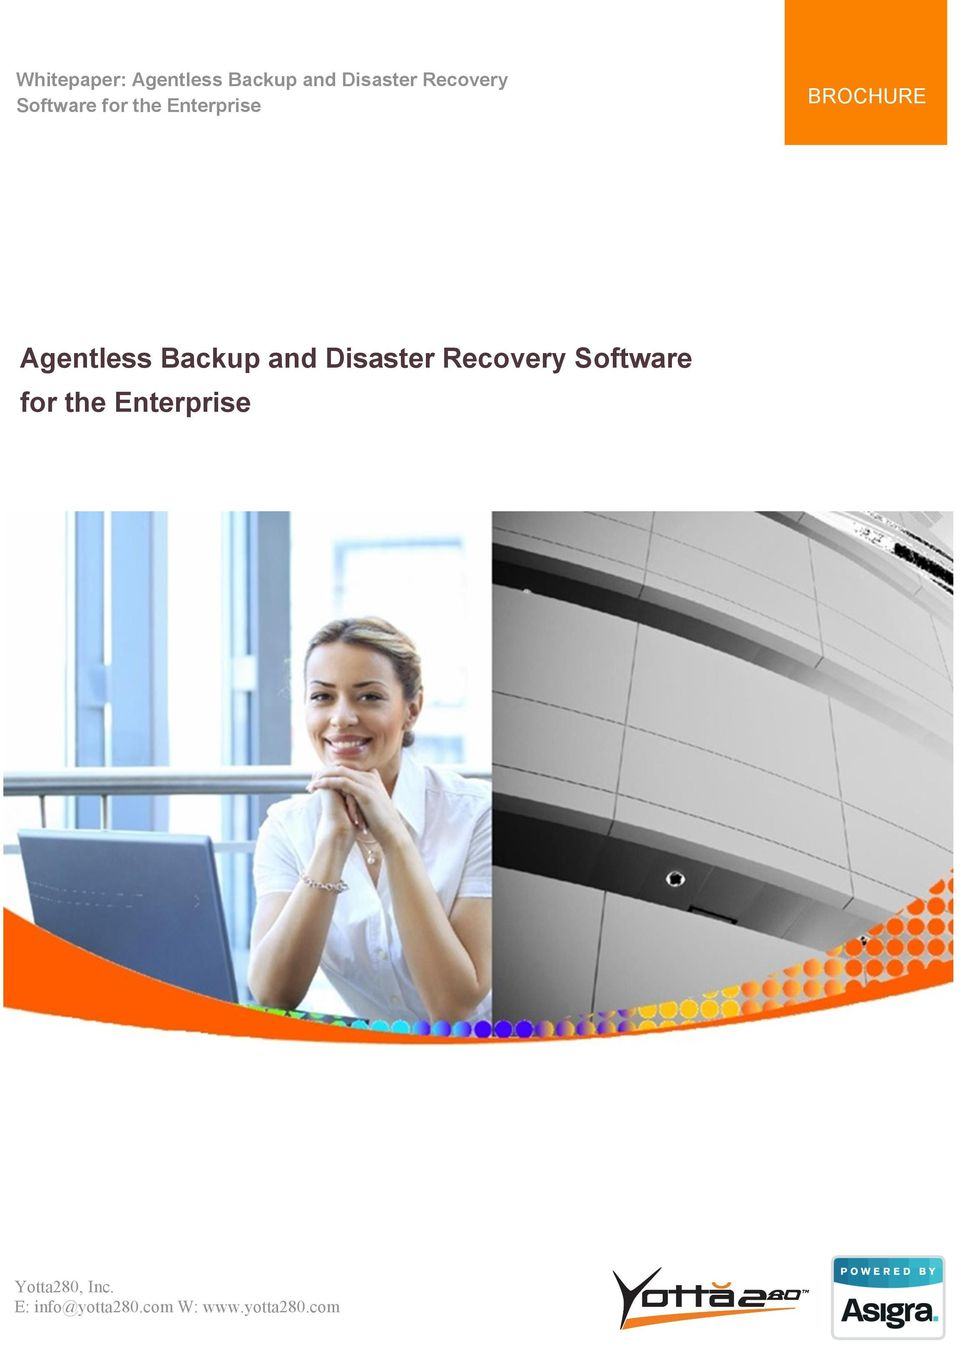 Enterprise BROCHURE Agentless Backup